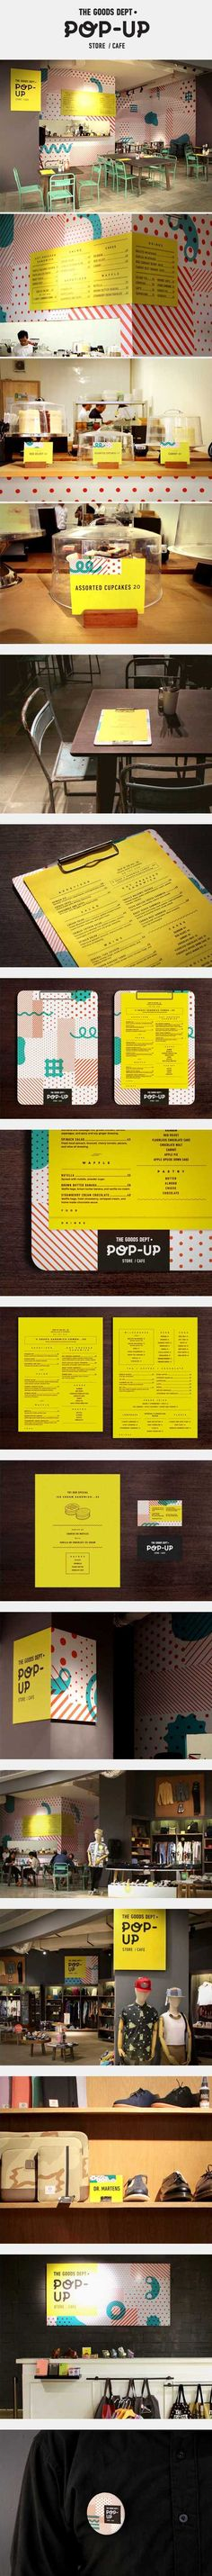 The Goods Dept rolled out a pop-up store/cafe in preparation for its third store that is soon opening in Lotte Avenue. As a twist to this temporary space, we along with The Goods Dept's team decided to introduce pattern and colors alongside their monochromatic colour palette to create exciting contrast. #PopUpRetail #RetailDesign